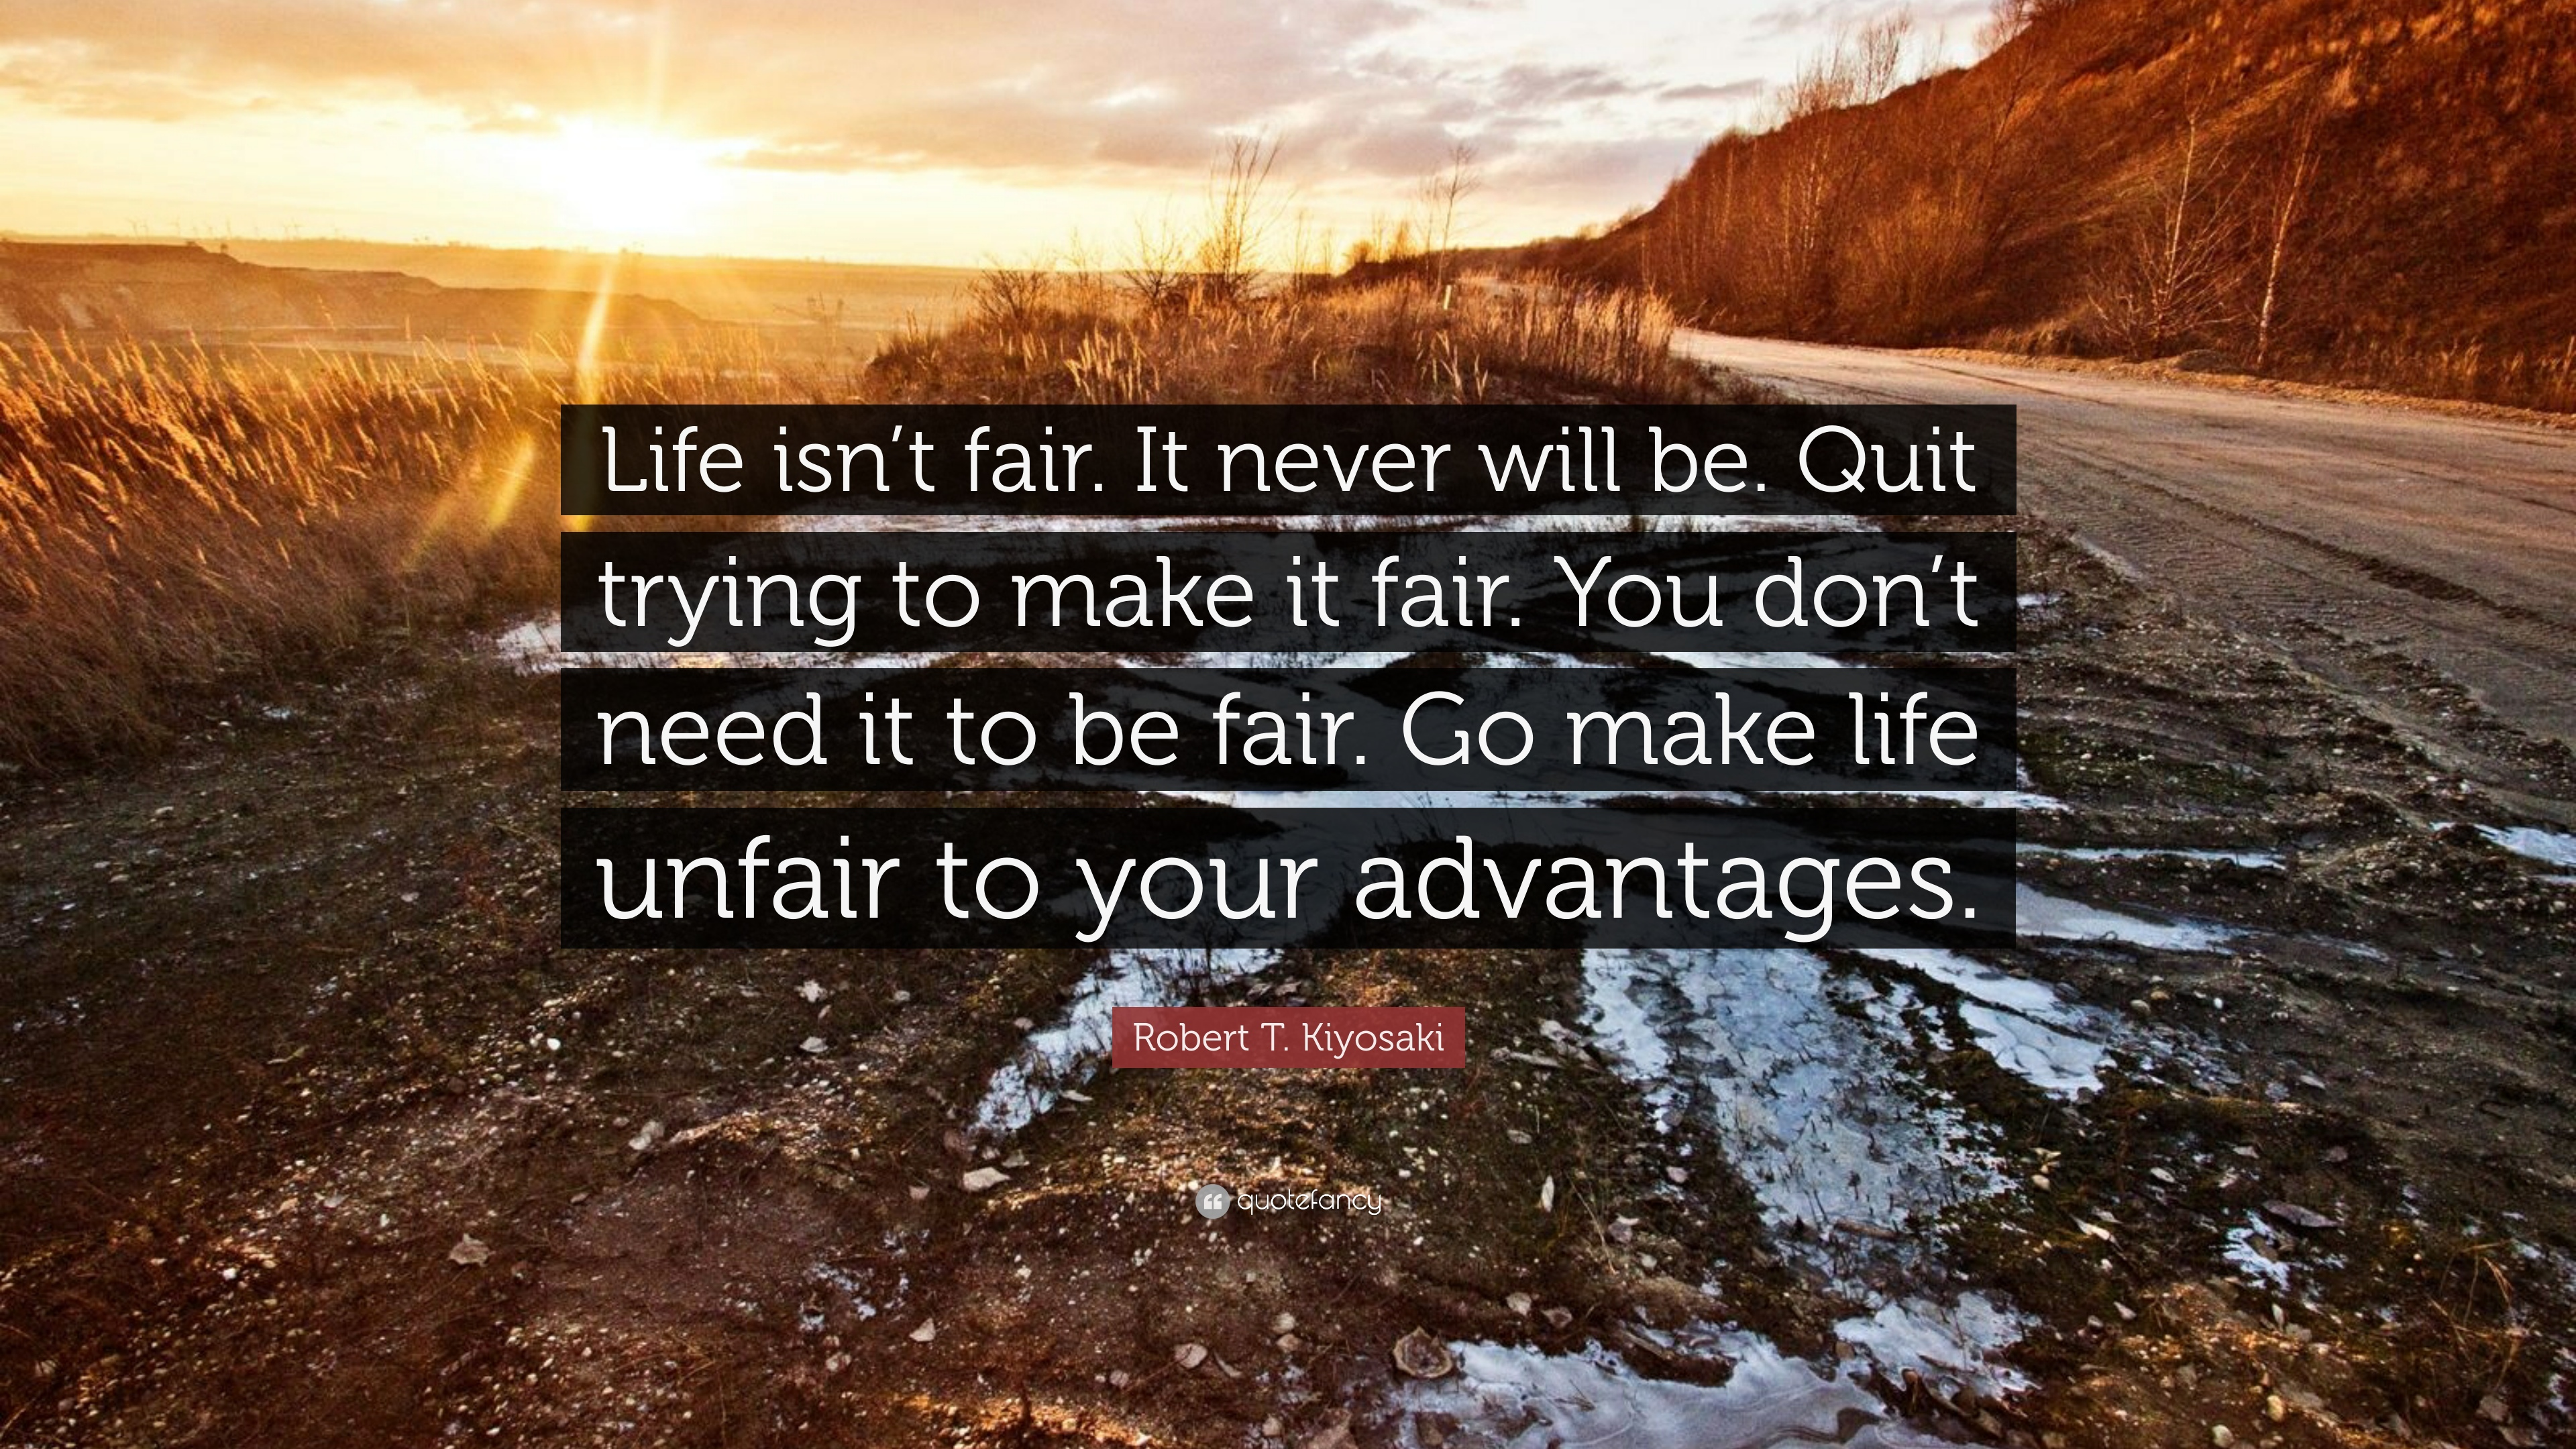 Robert T Kiyosaki Quote Life Isn T Fair It Never Will Be Quit